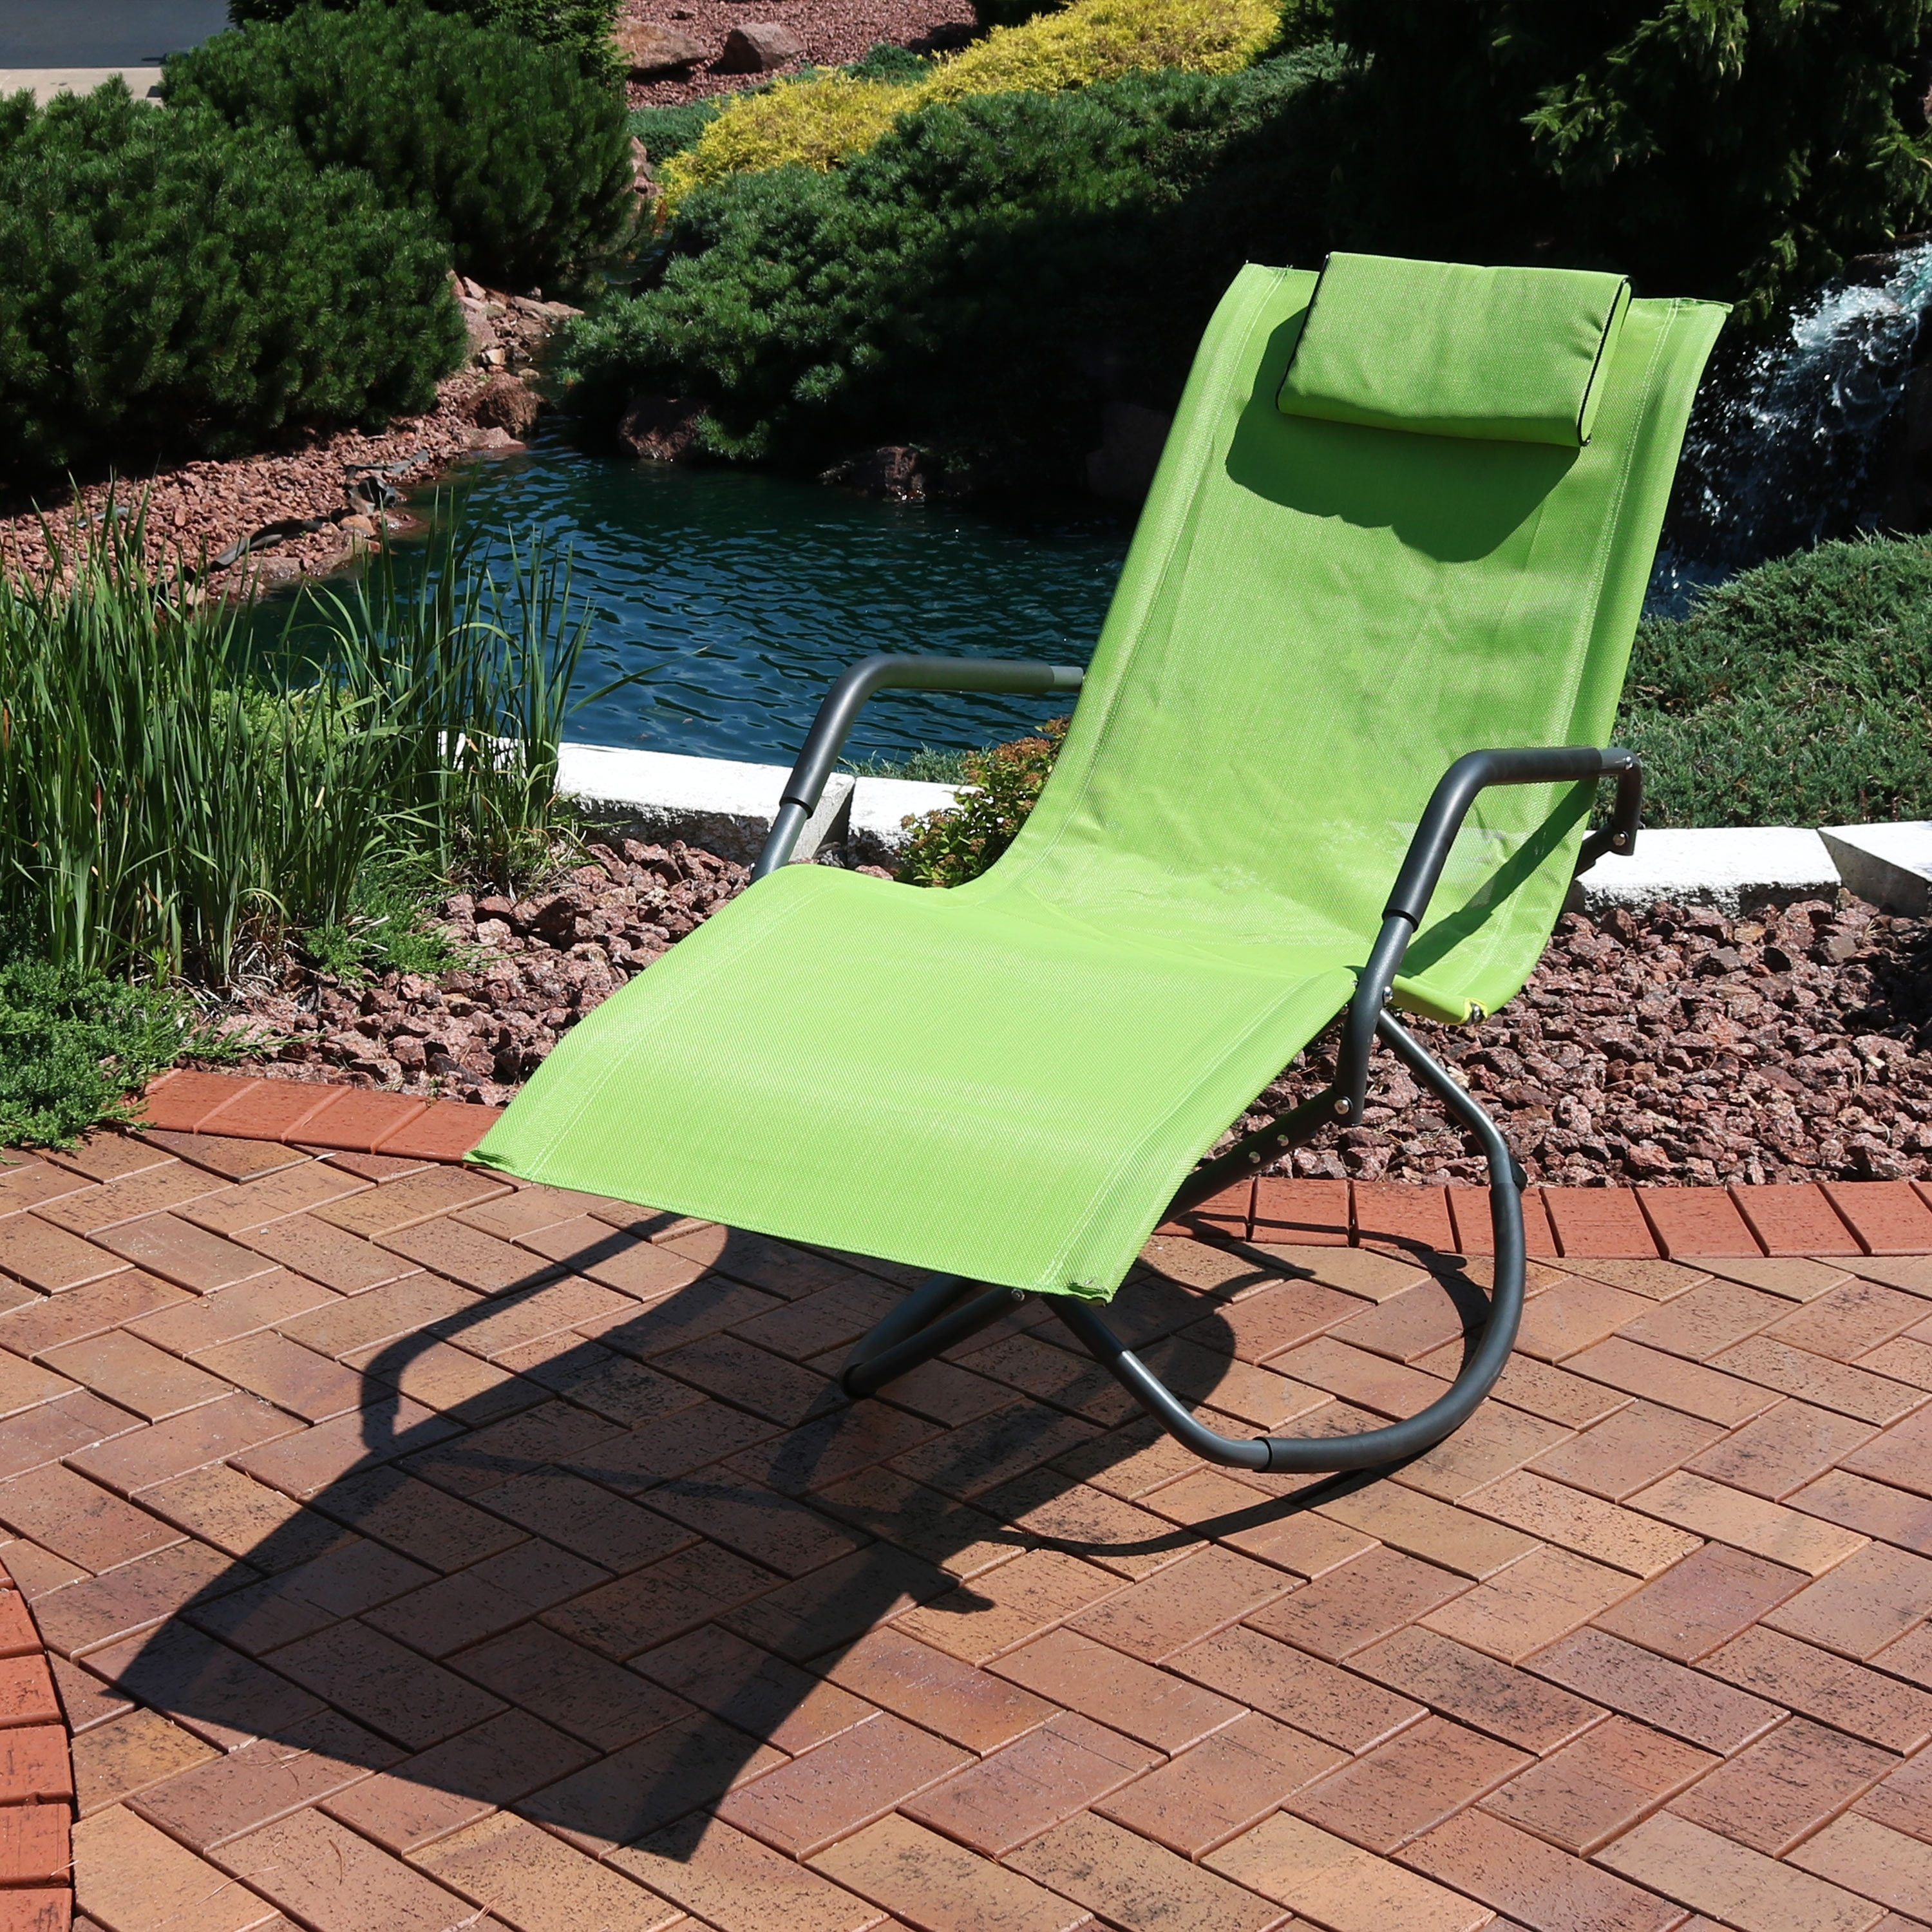 Shop sunnydaze outdoor folding rocking chaise lounger with headrest pillow green free shipping today 22890412